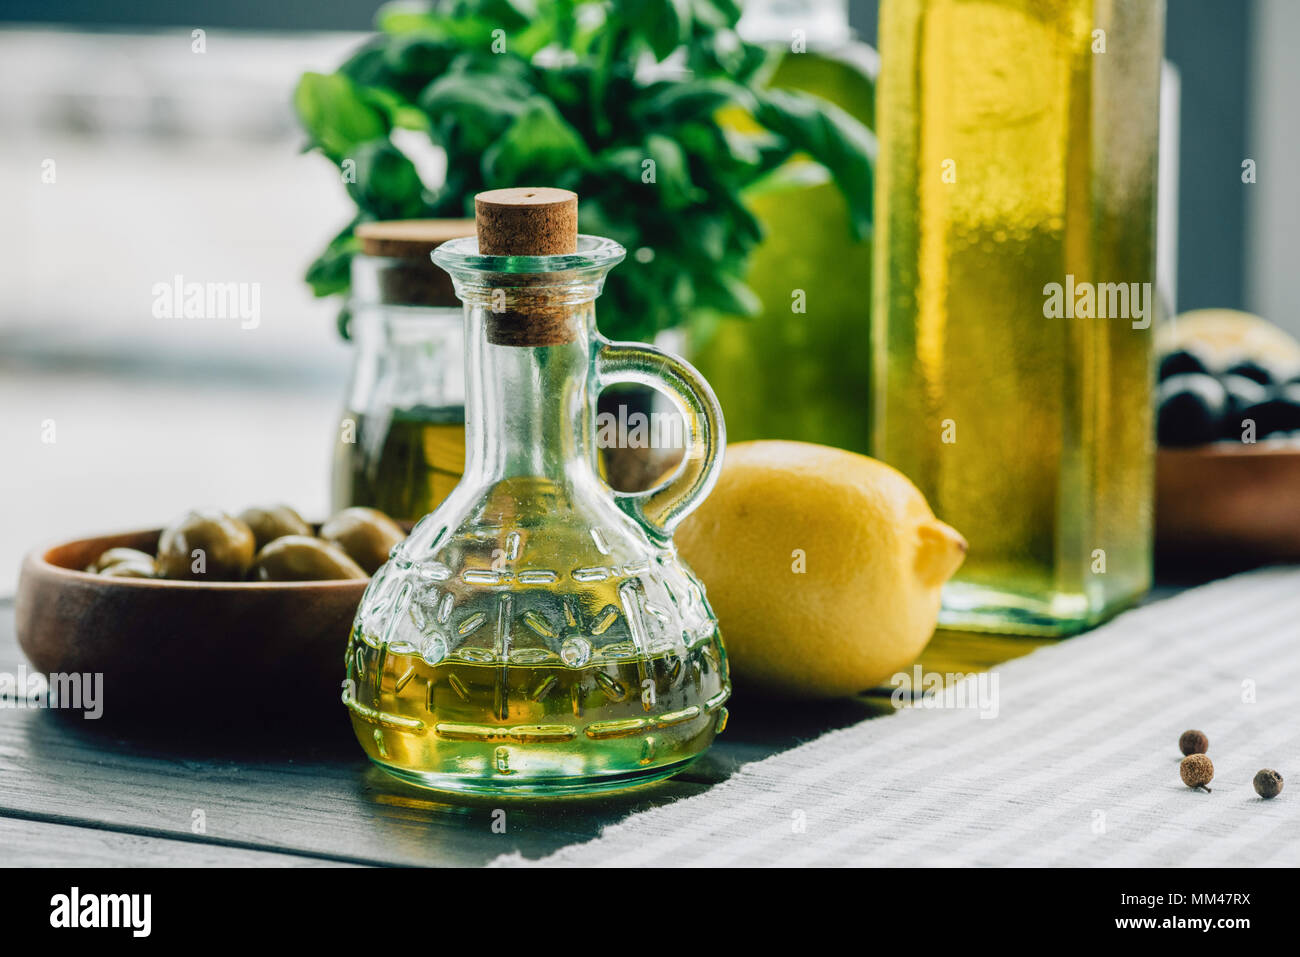 olive oil bottles with vegetables - Stock Image